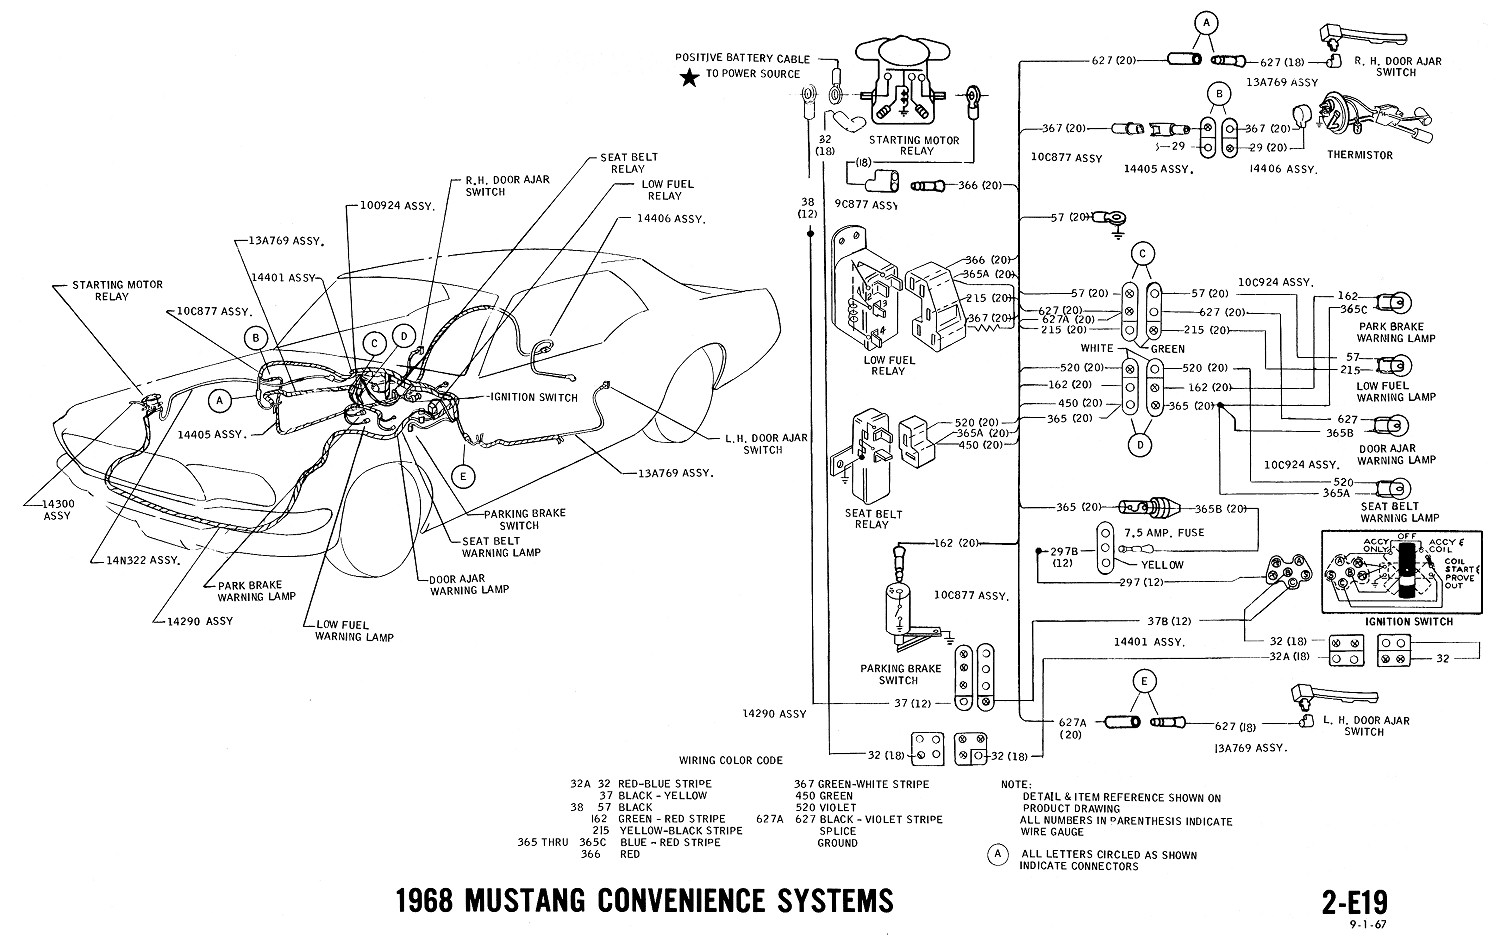 1968 Mustang Wiring Diagrams Evolving Software 1992 Ford Mustang Wiring  Diagram Wiring Diagram For A 1968 Ford Mustang